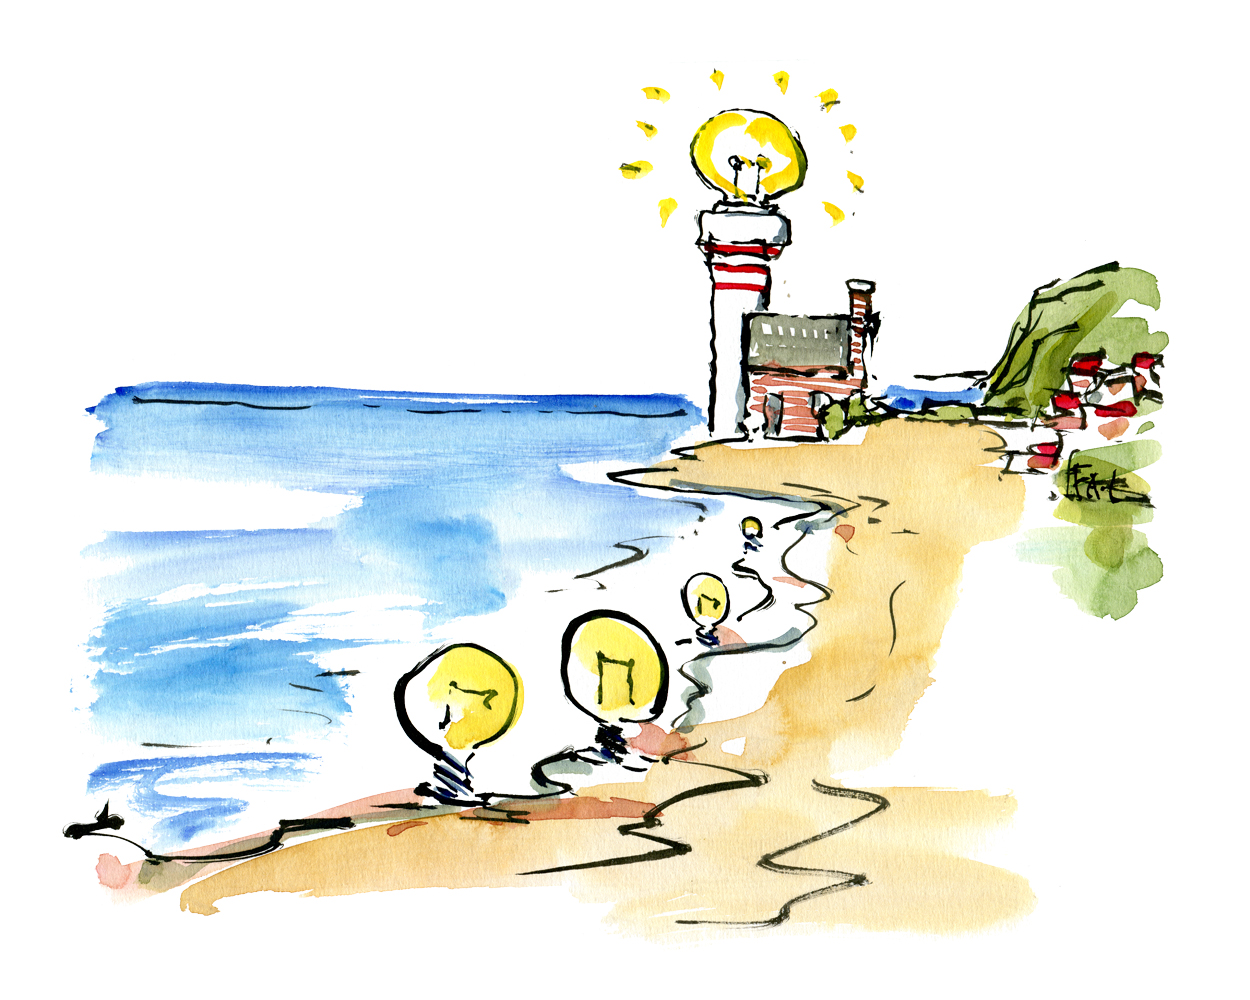 Drawing of light bulbs along the coastline